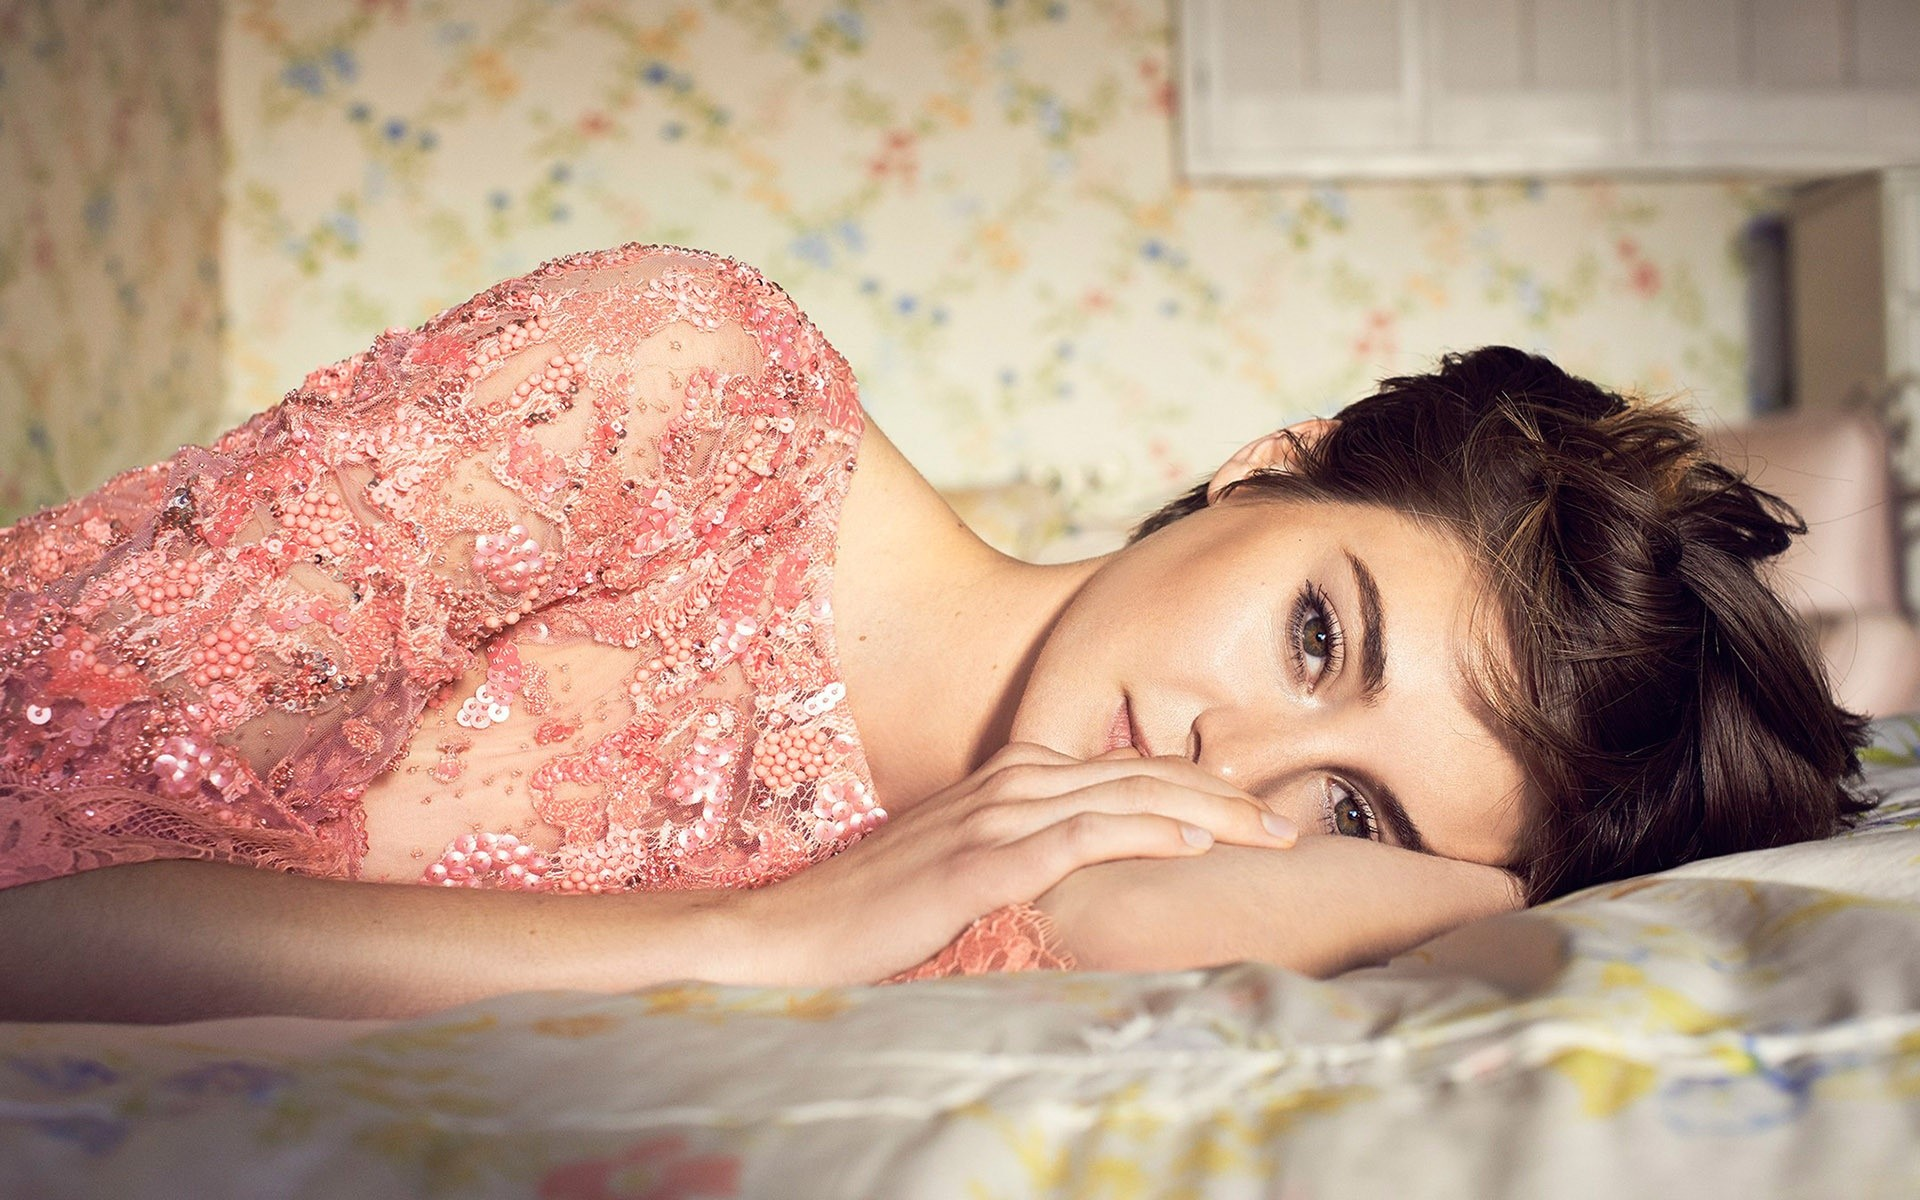 Wallpaper Shailene Woodley in a bed